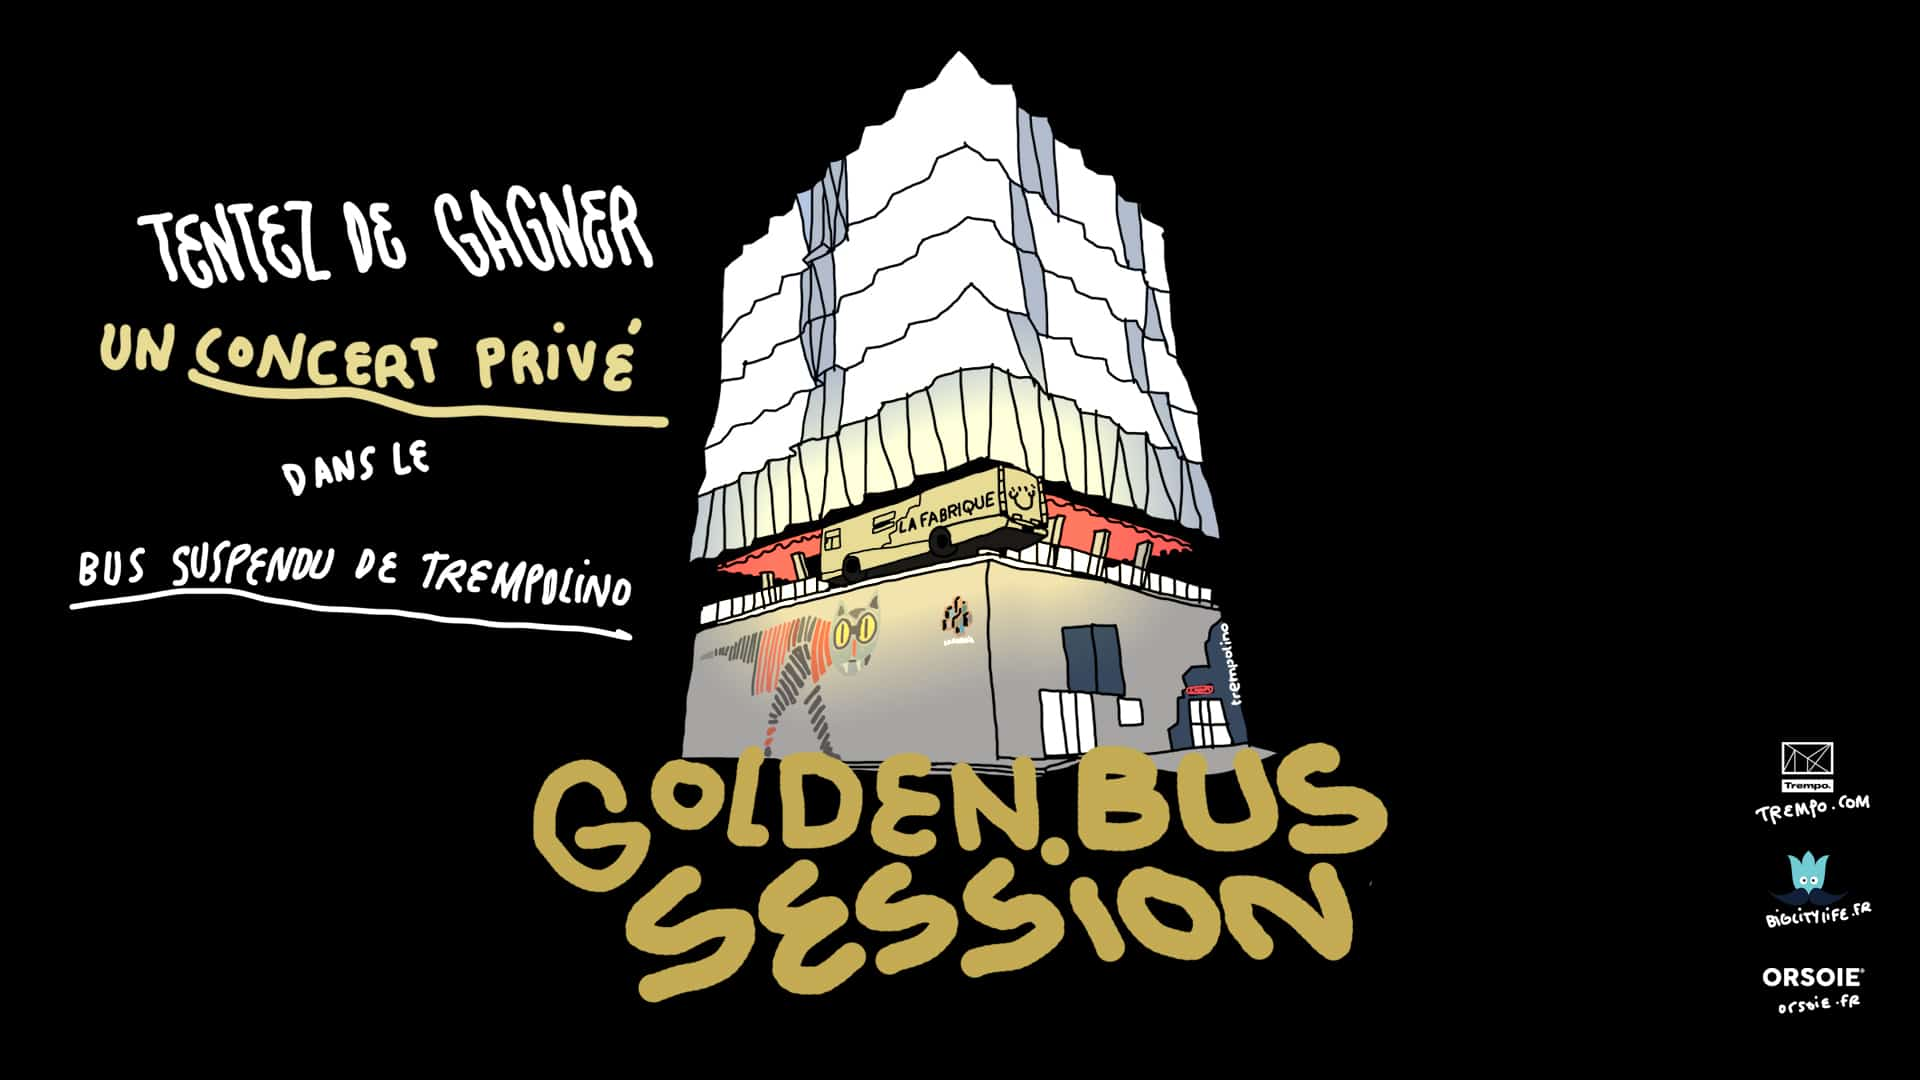 golden-bus-session-golden-ticket-trempolino-big-city-life-orsoie-nantes-2019-concert